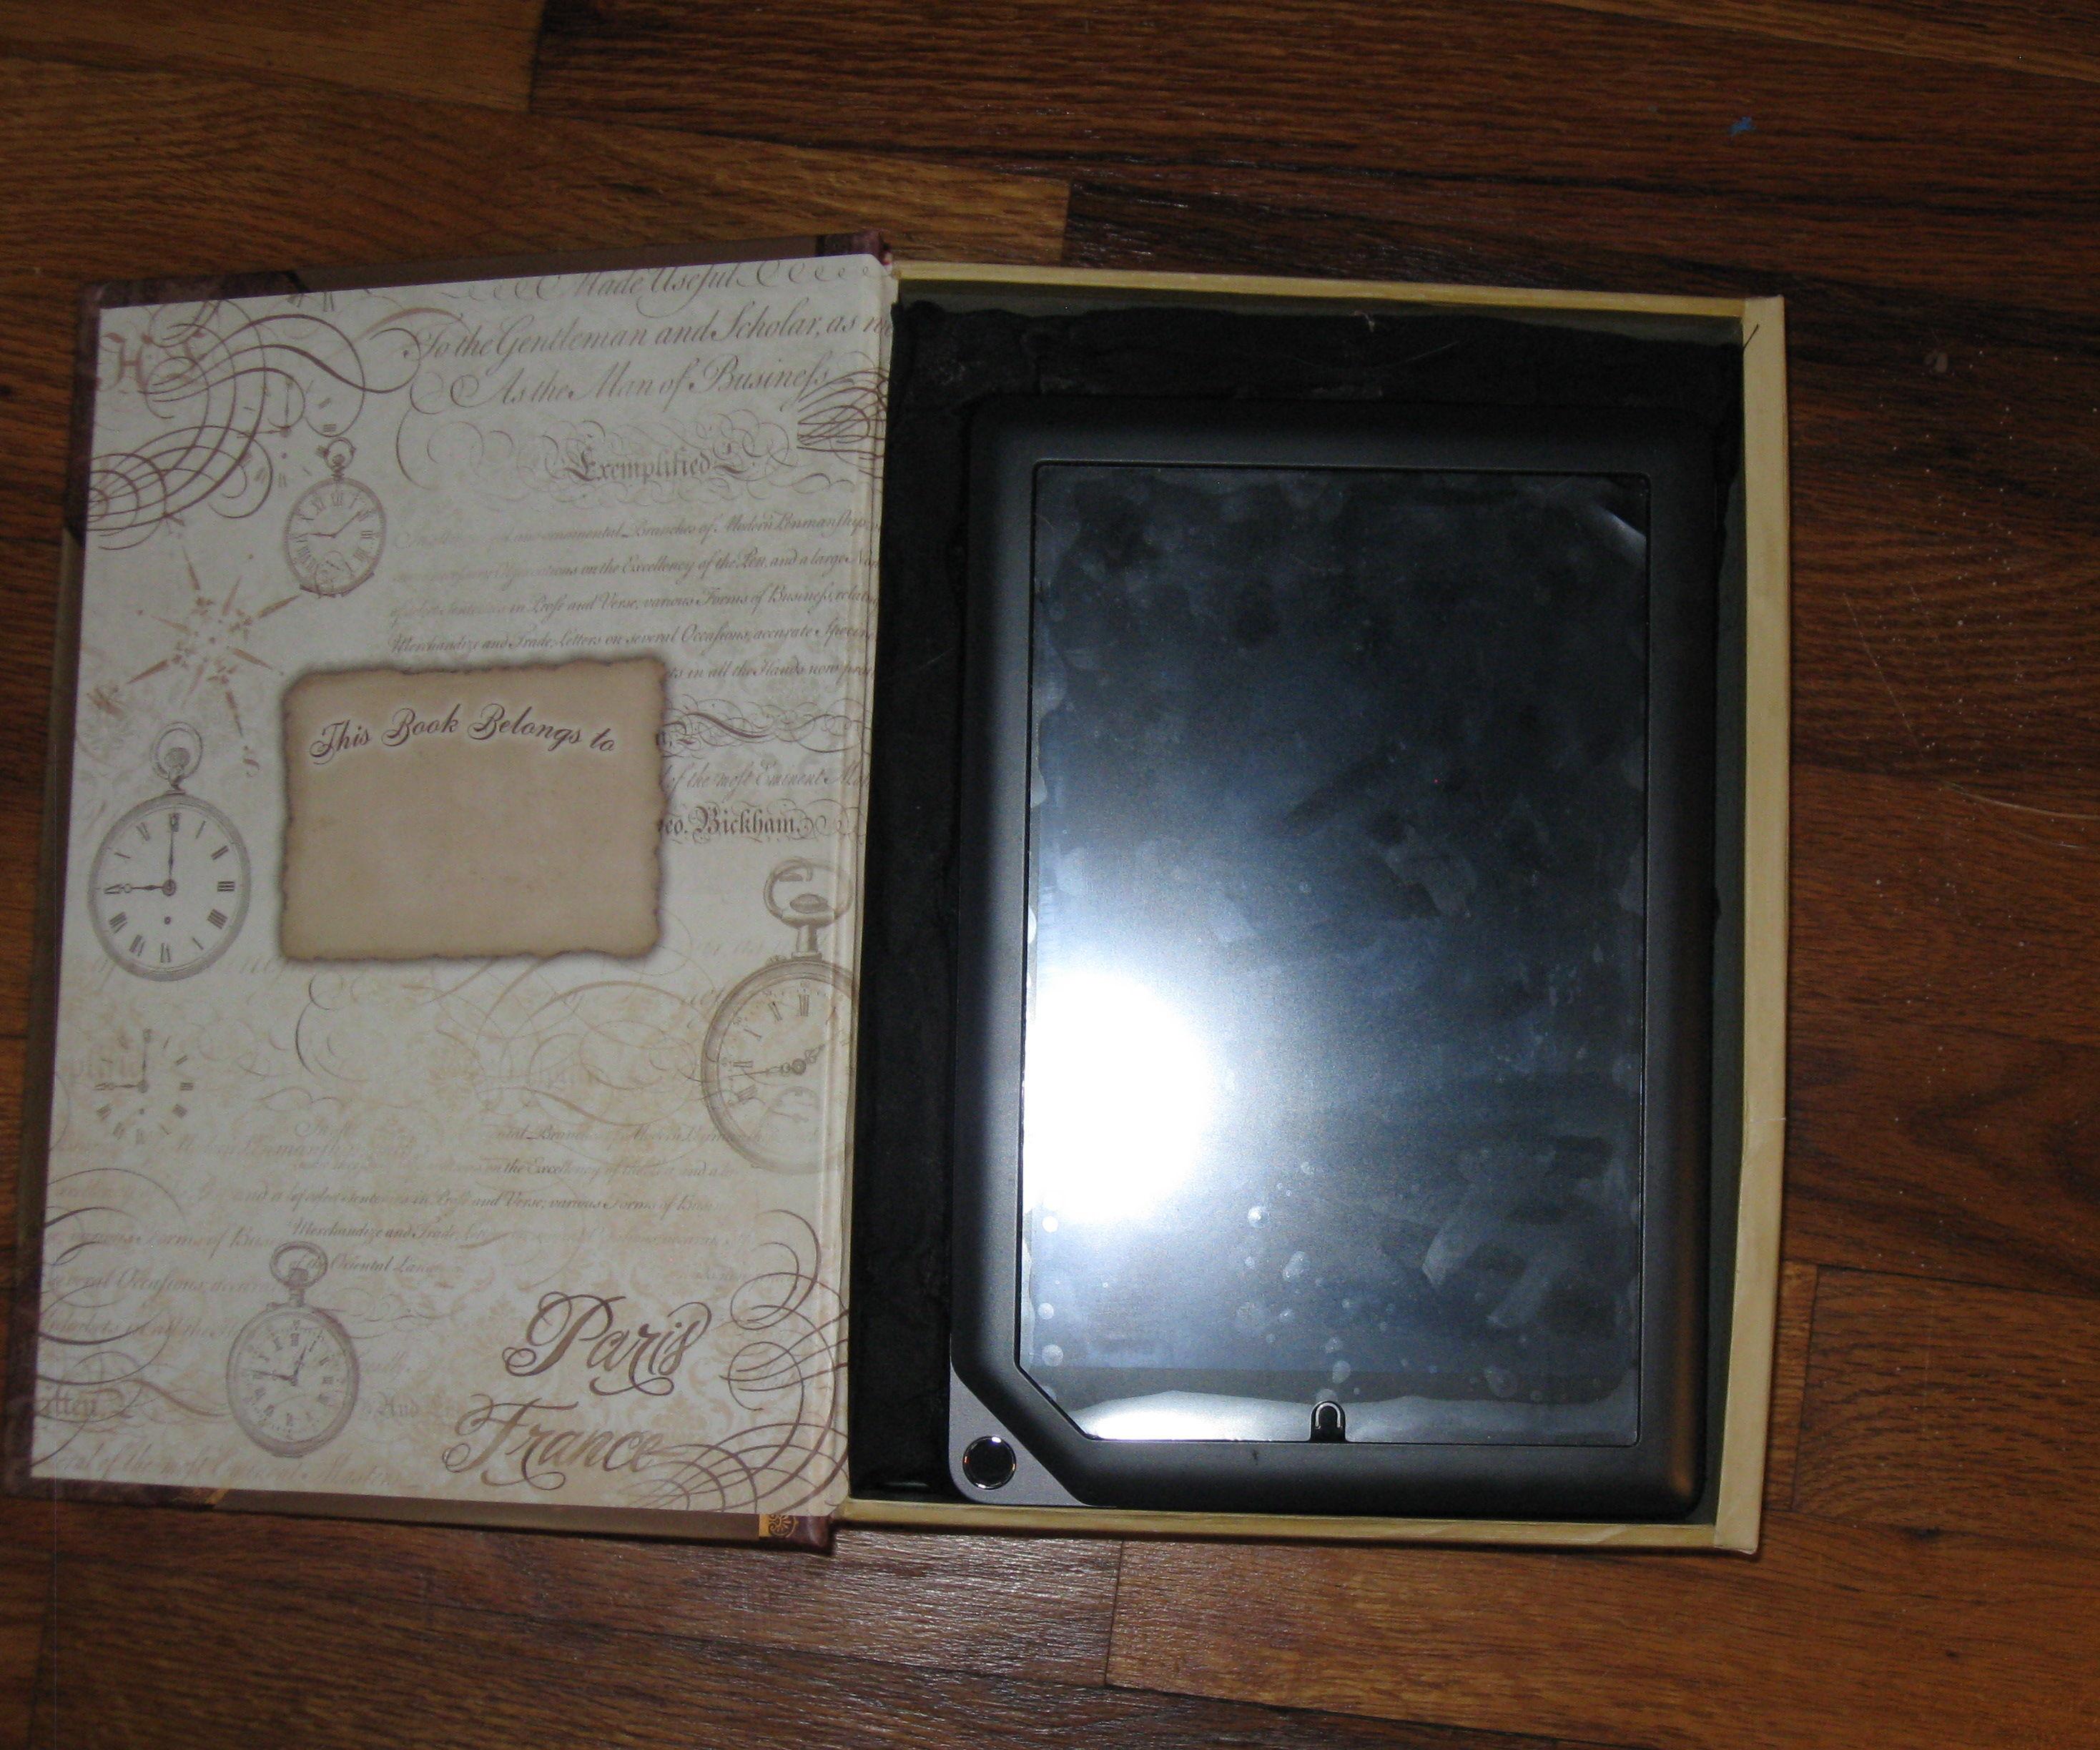 Two layer book box to hold a tablet PC